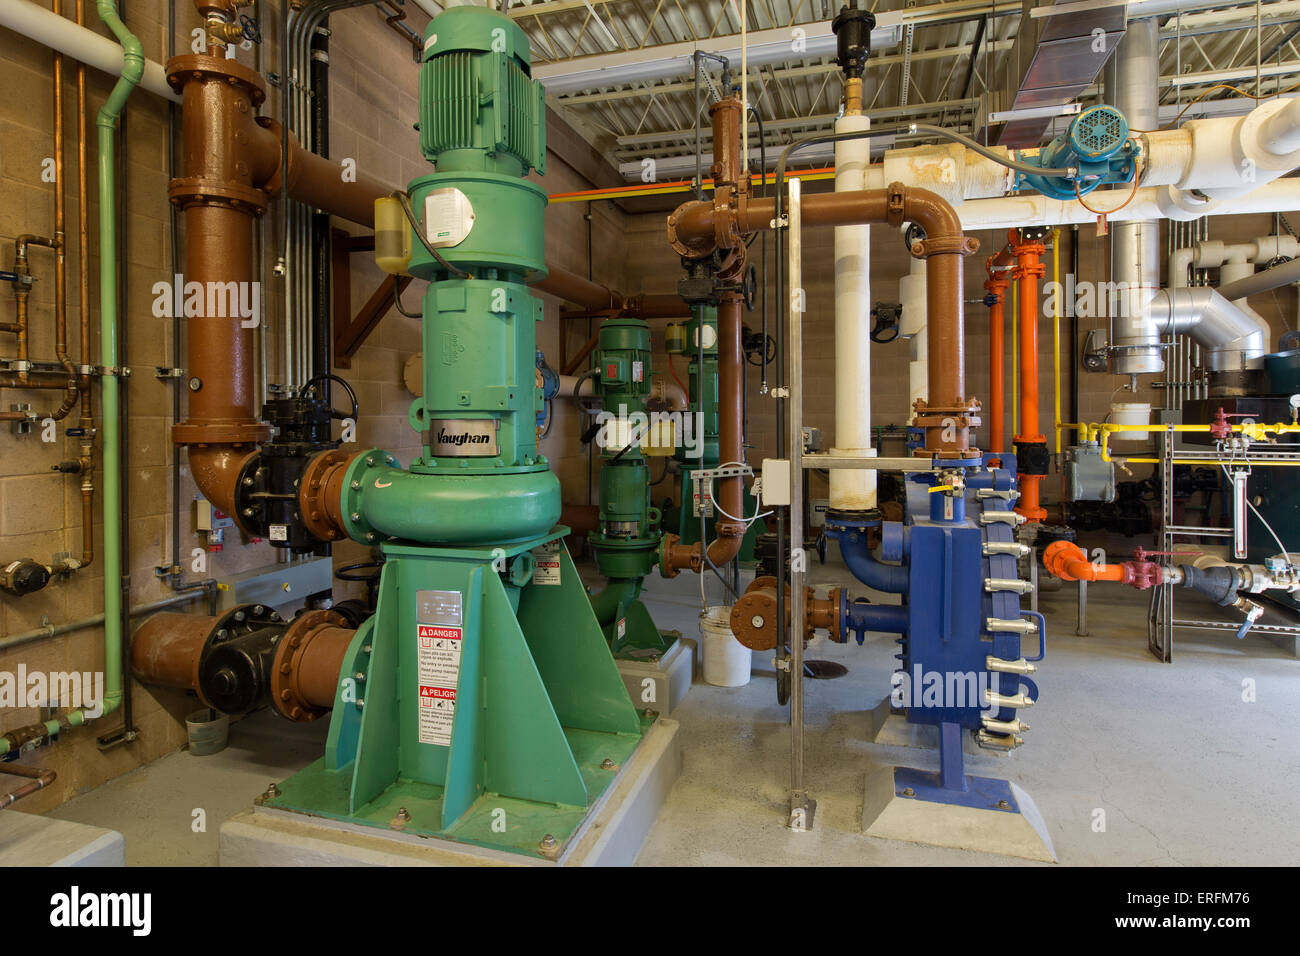 Digester Mixing System,  pump no. 3. - Stock Image